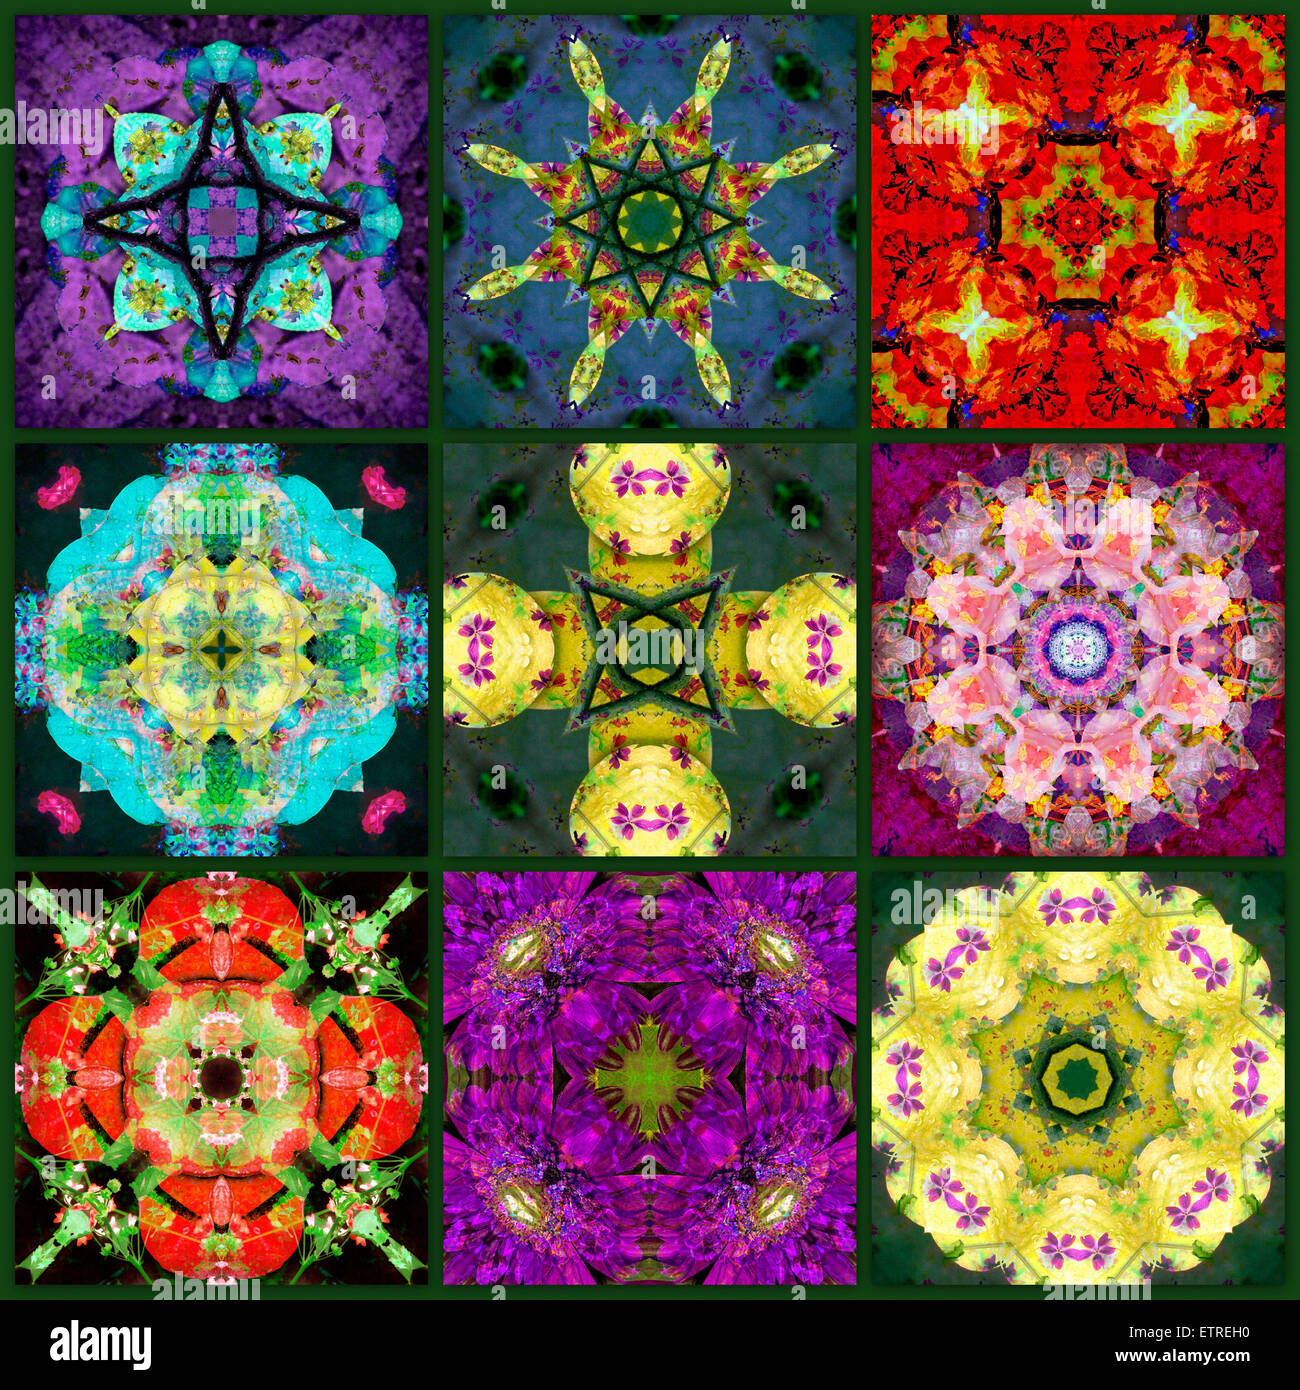 a mandala from flowers, - Stock Image